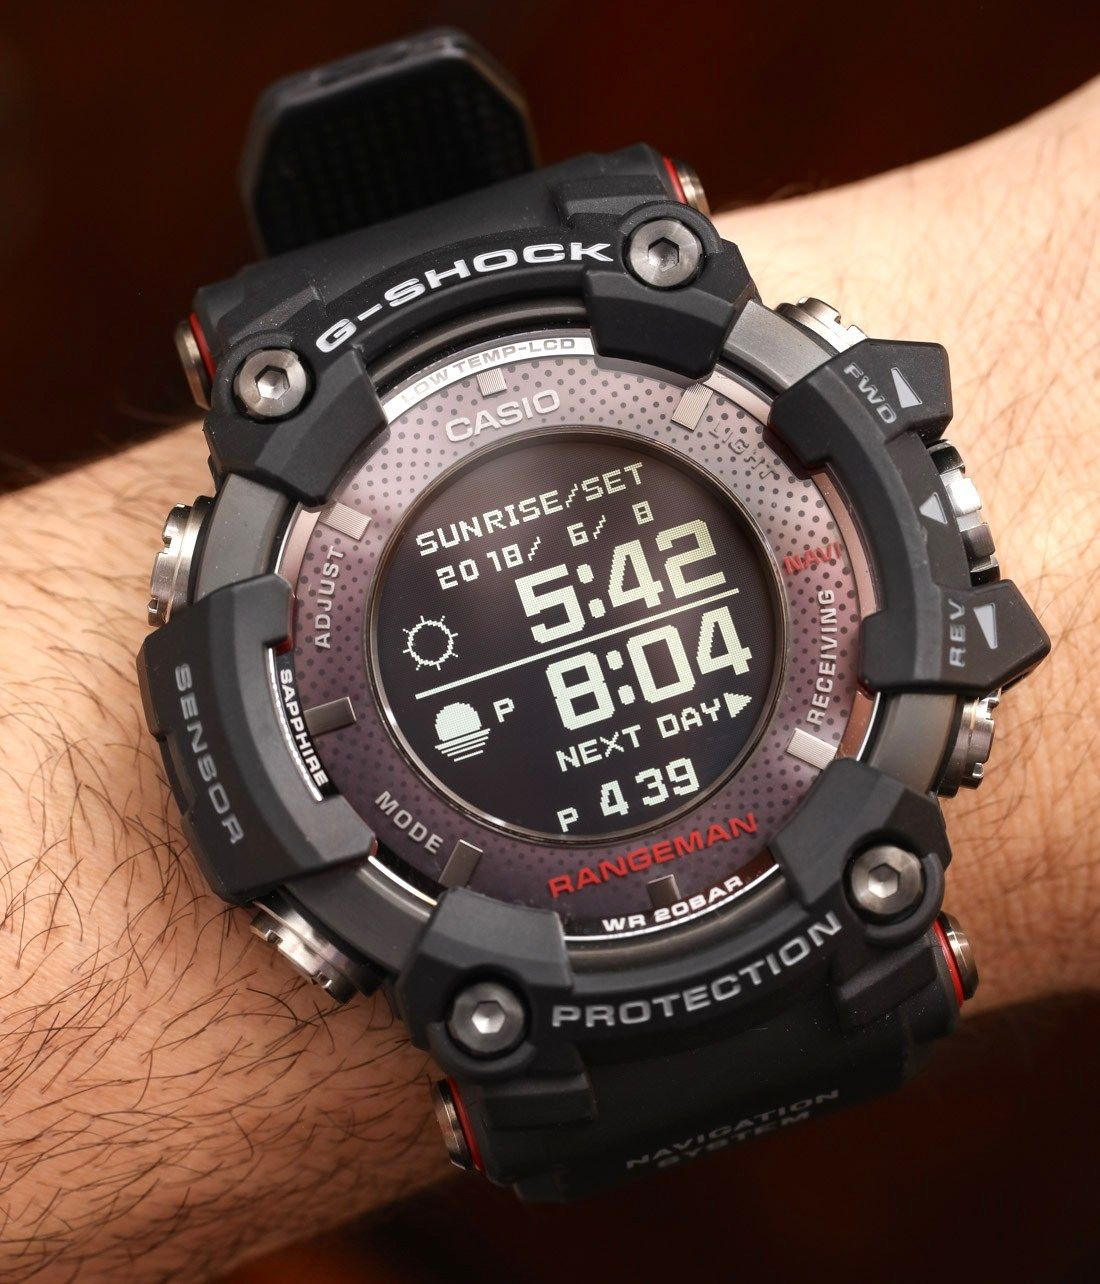 Casio G-Shock Rangeman GPRB1000-1 GPS Watch Review Wrist Time Reviews 691fc48a40